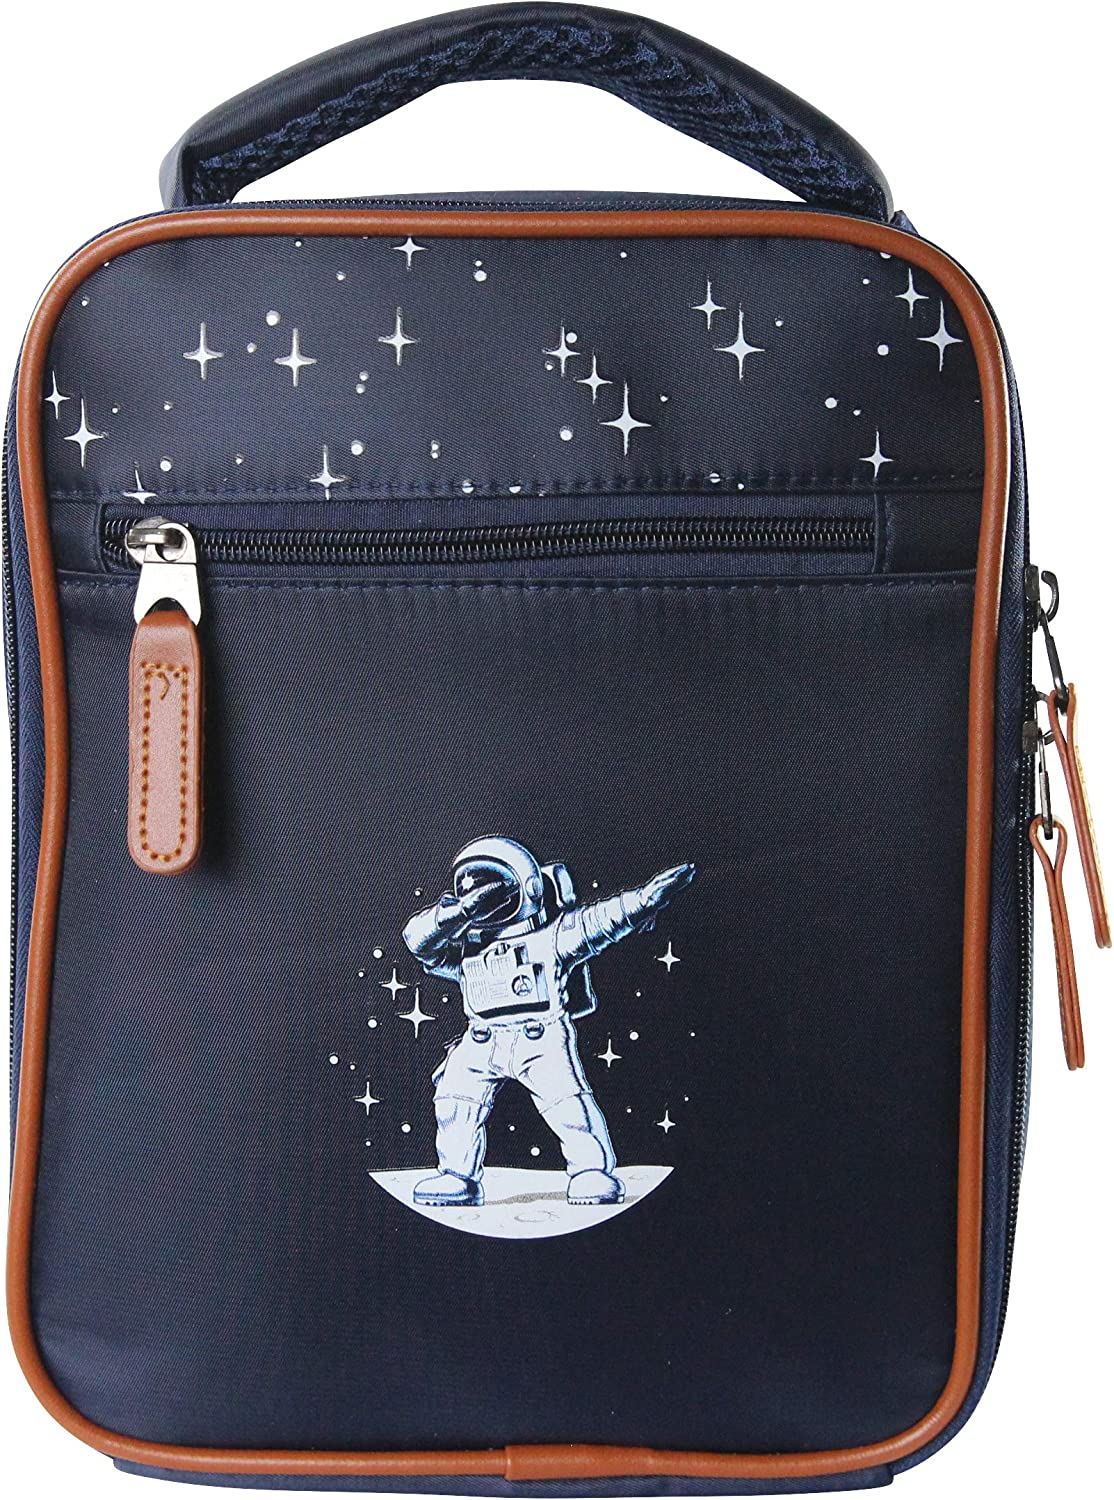 LUNCH BOX LUNCH BAG GALAXY DUBBING SPACE INSULATED COOLER THERMAL BAG FOOD CONTAINER SCHOOL PICNIC HIKE DABBING SPACEMAN ASTRONAUT STARS MOON DURABLE FOR KIDS